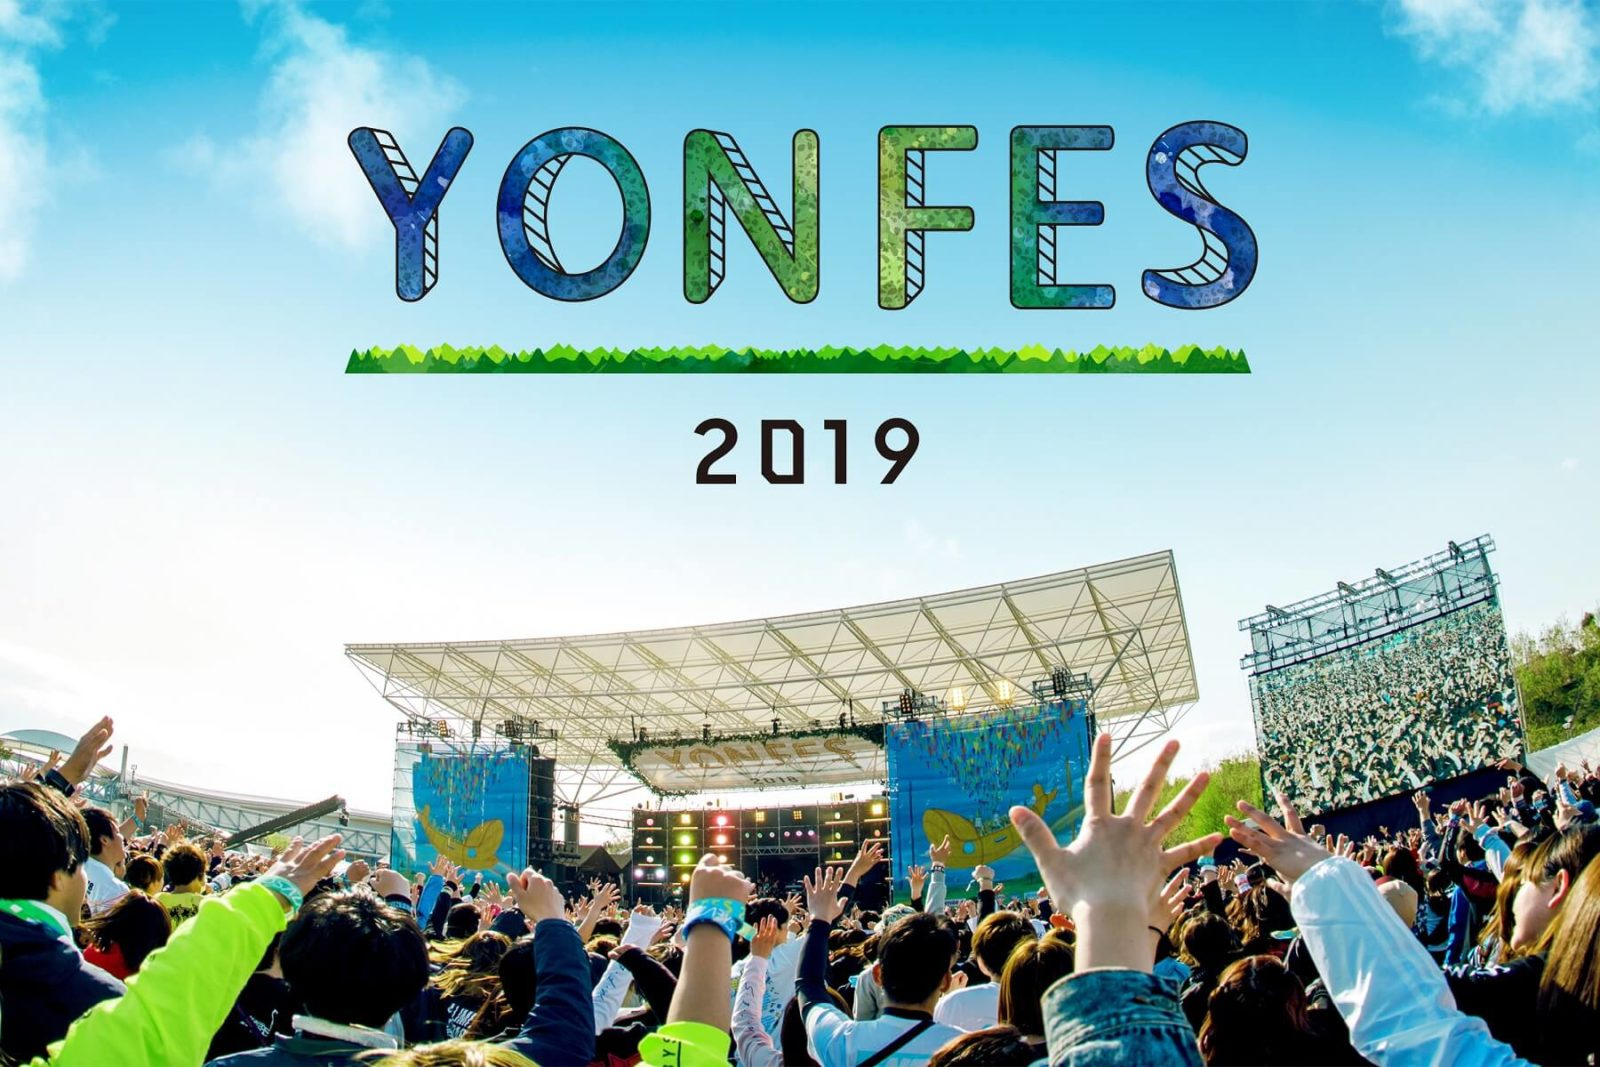 04 Limited Sazabys主催『YON FES 2019』の開催が決定サムネイル画像